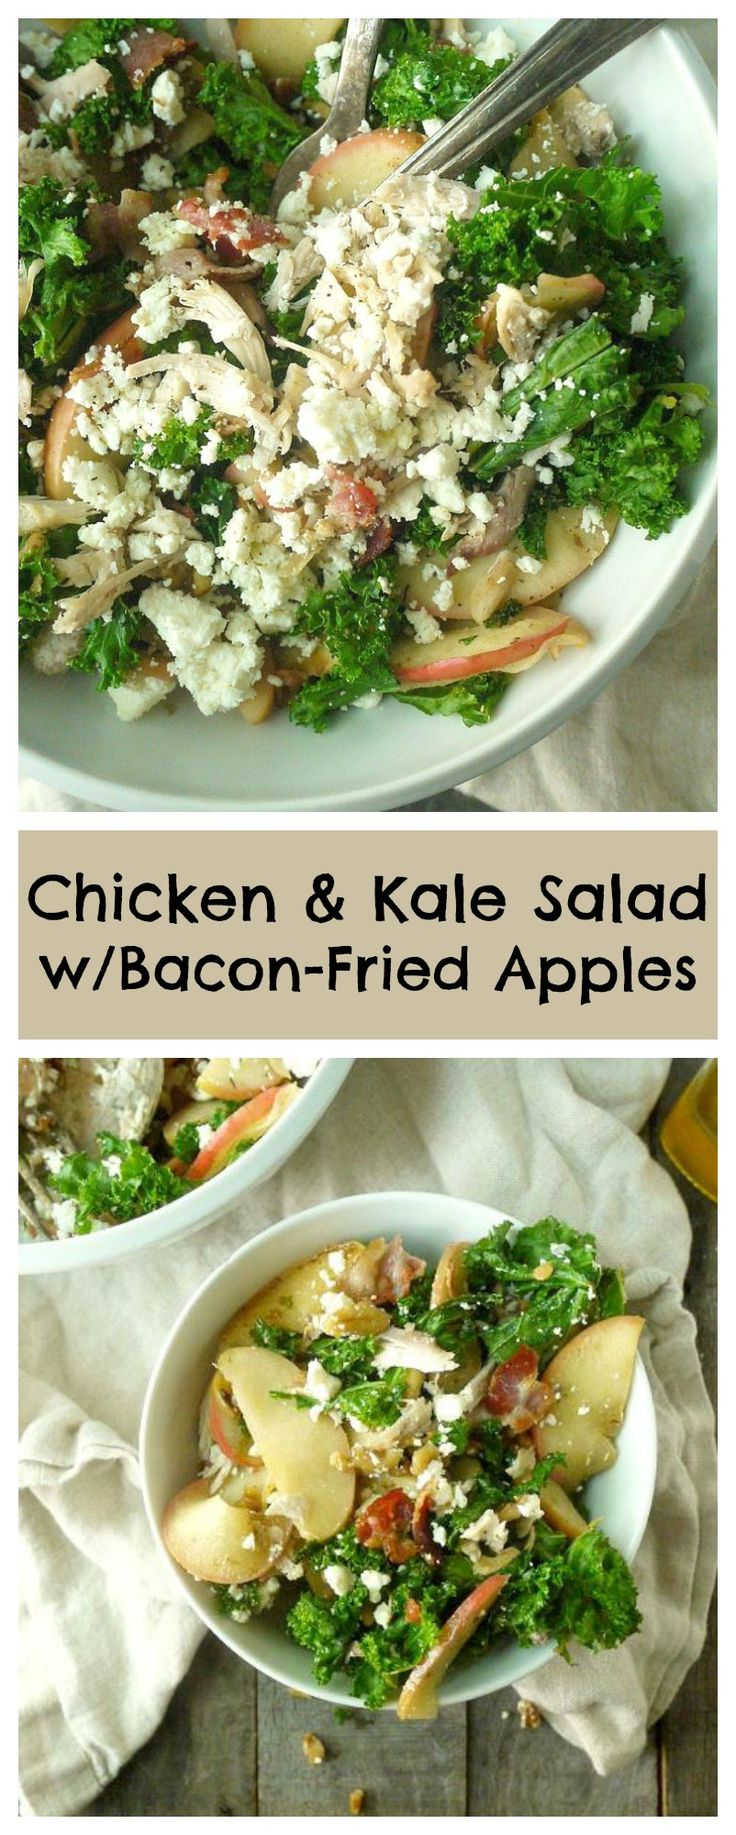 This salad is like fall in a bowl! #salad #fallrecipes